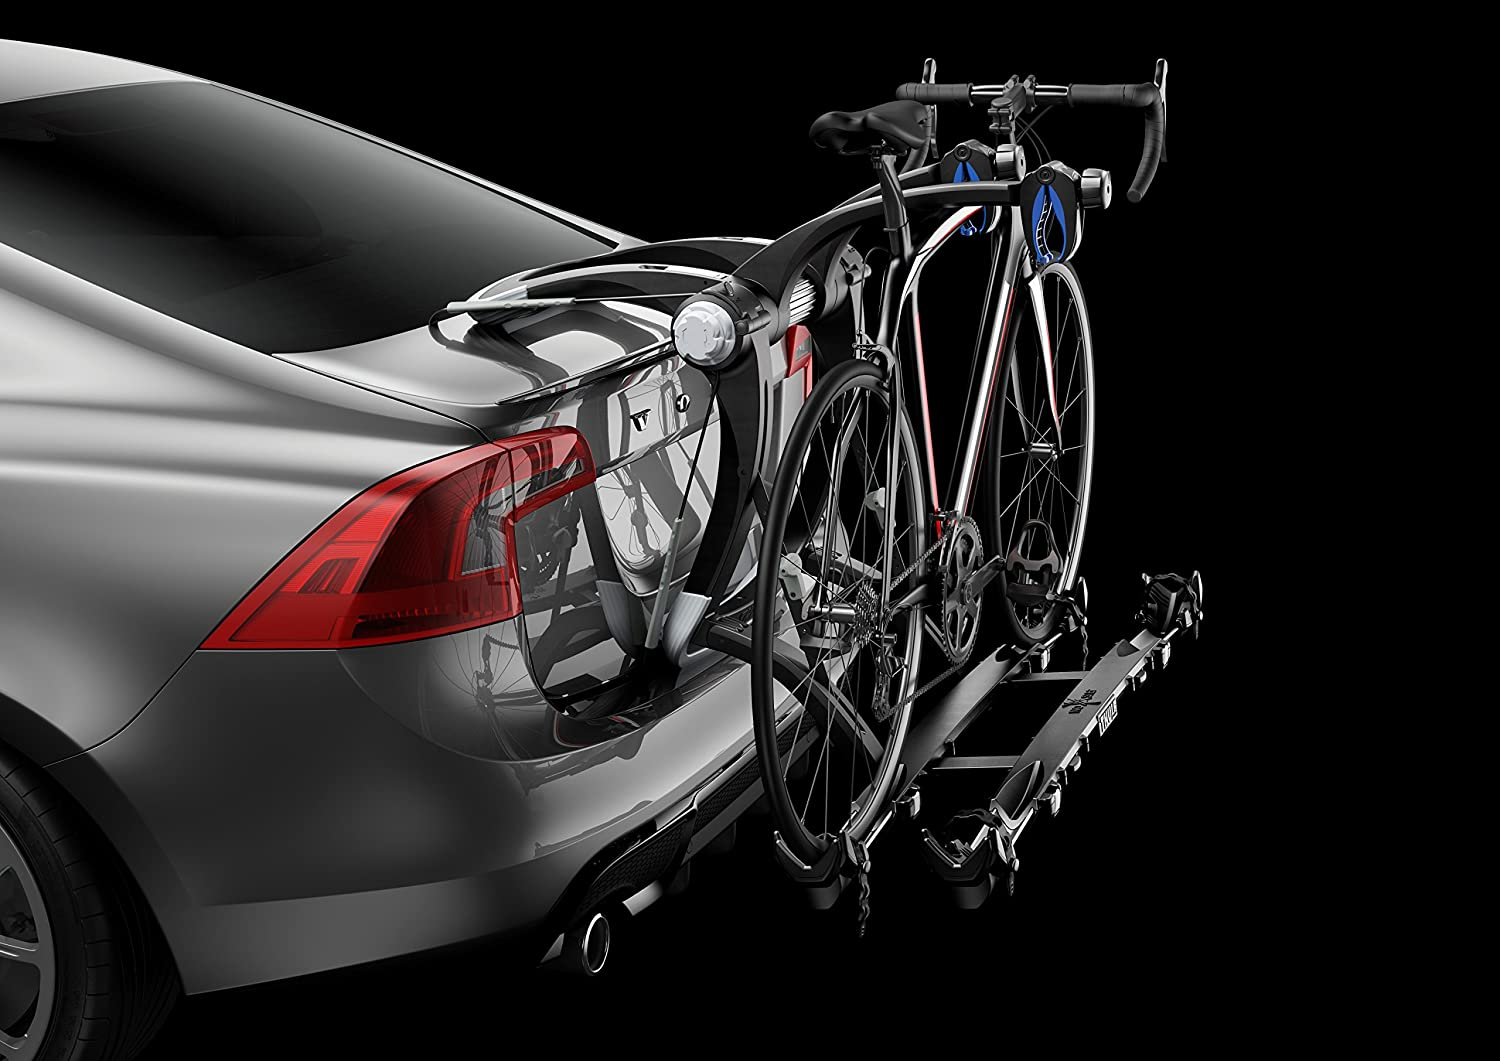 Photo of a bike attached to a rack mounted on the car's trunk, on a black background.